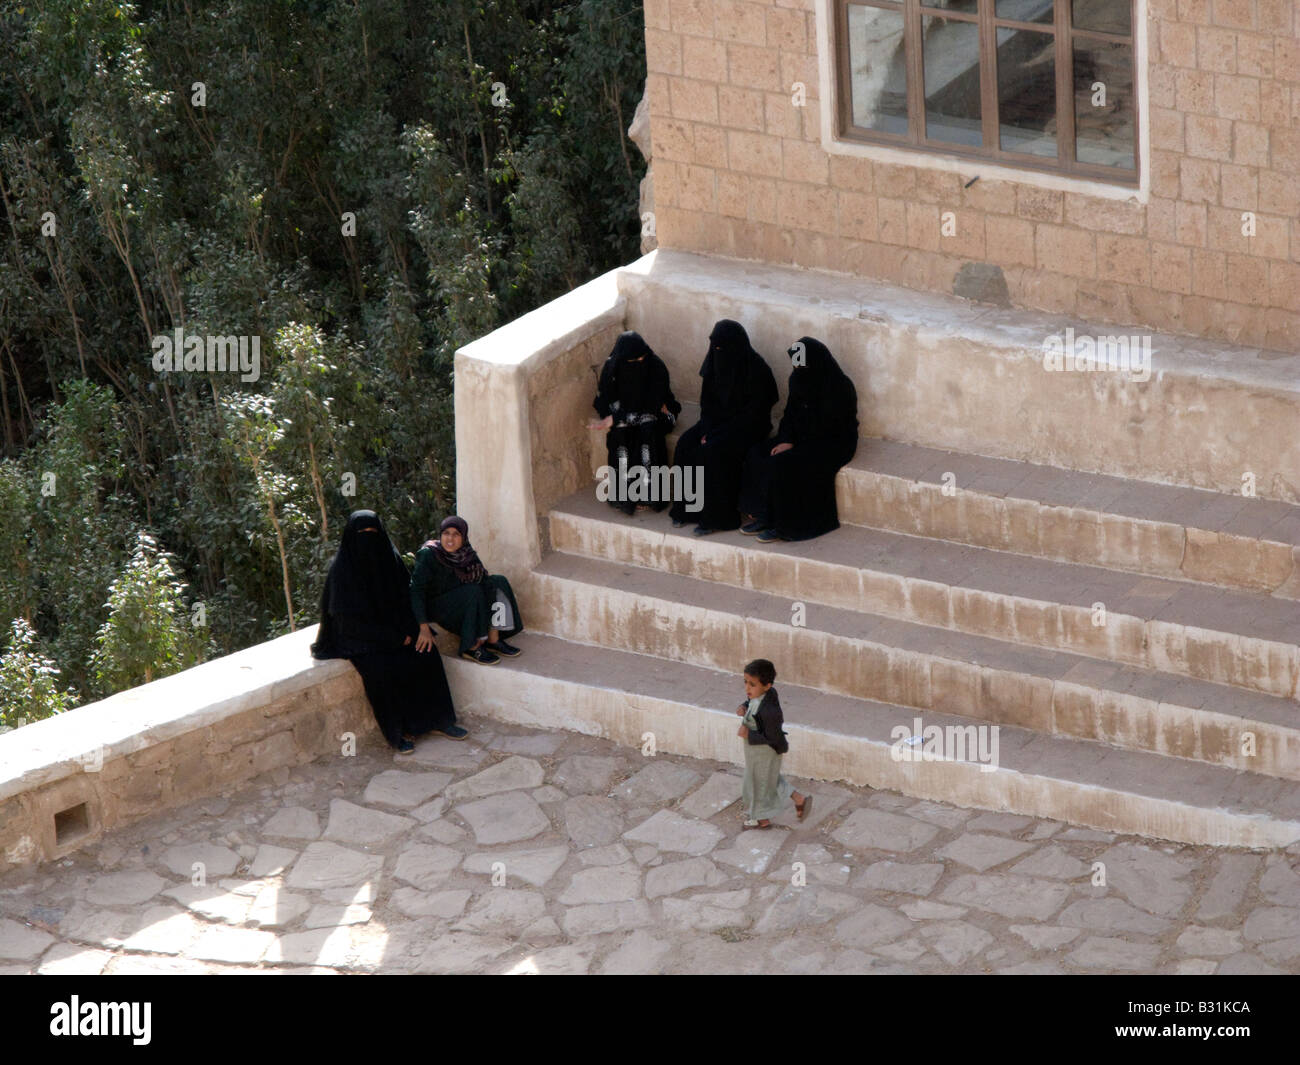 Muslim women sit together wearing the Niqab traditional attire of Muslim women Yemen Middle East - Stock Image